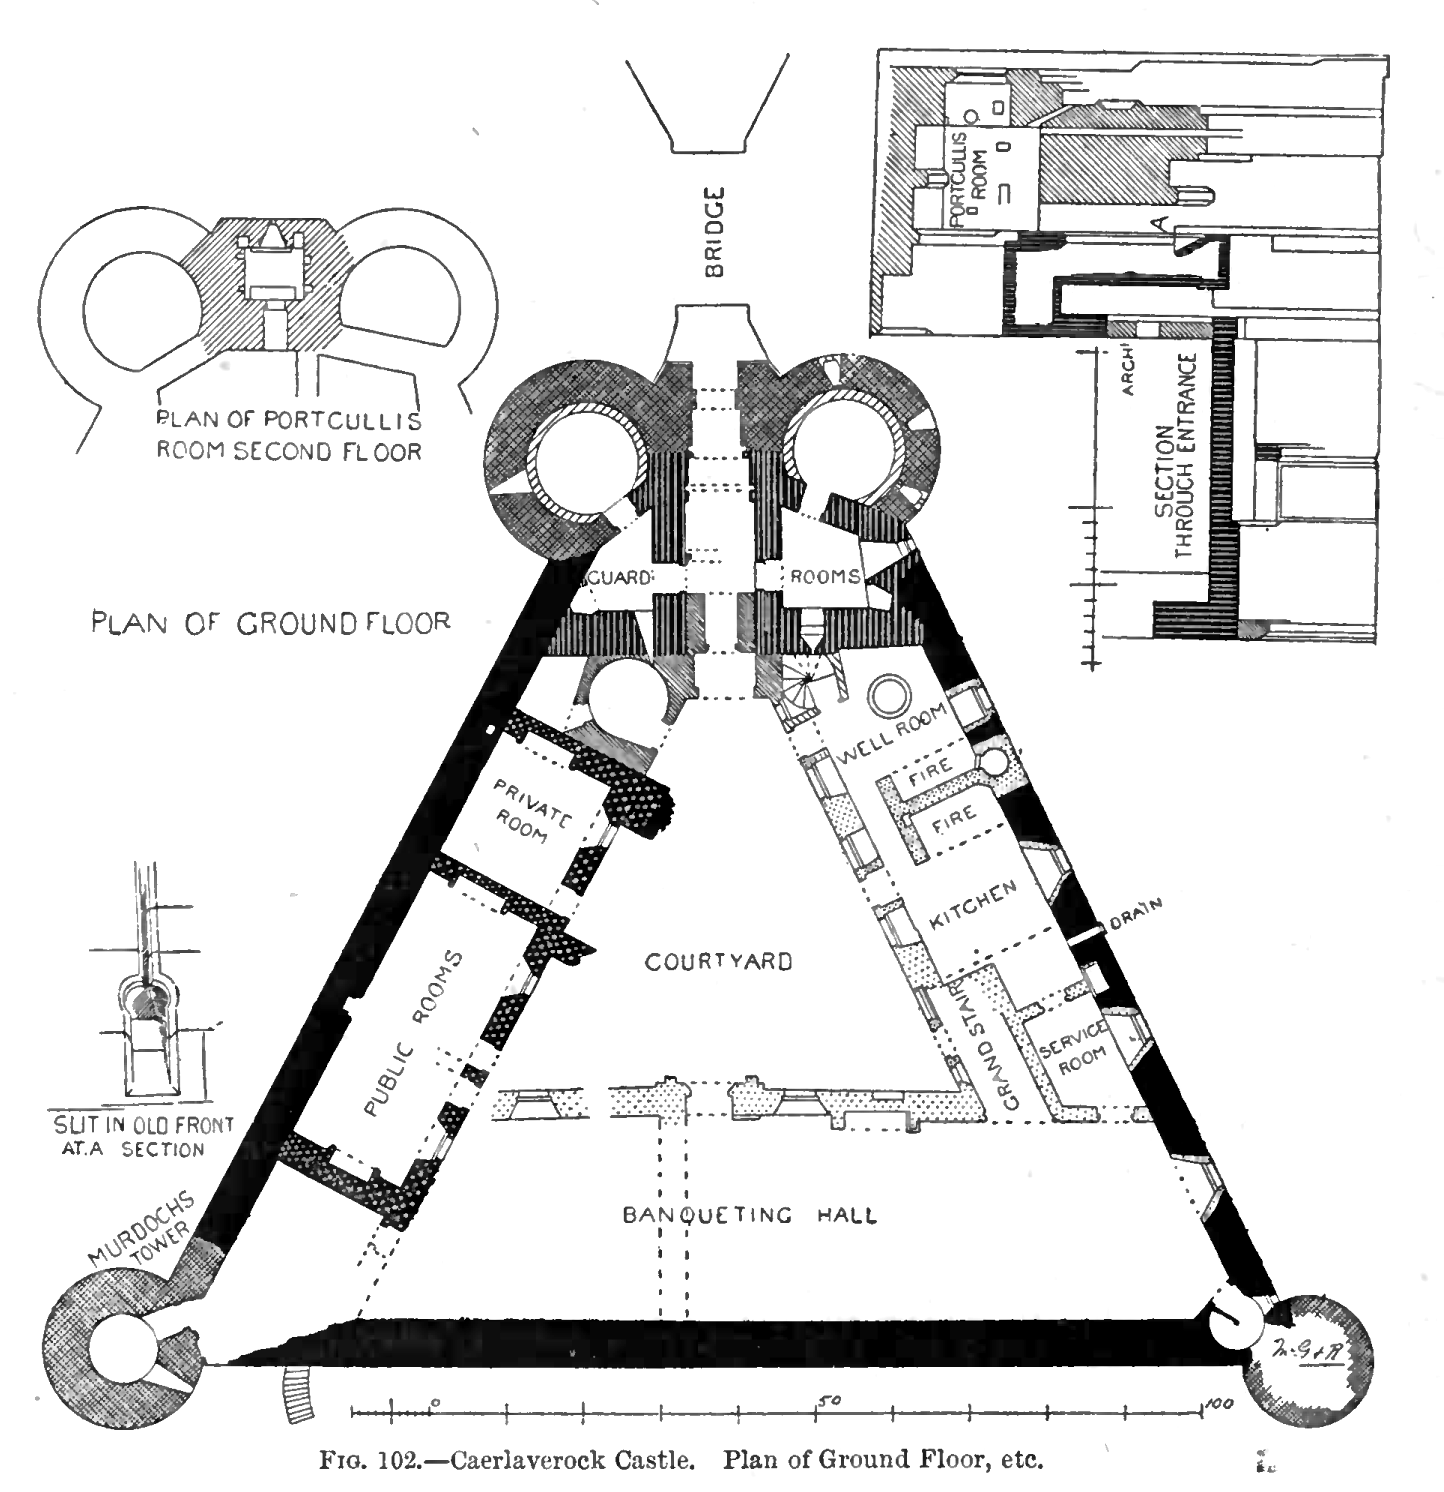 File Caerlaverock Castle Plan Of Ground Floor Etc Png